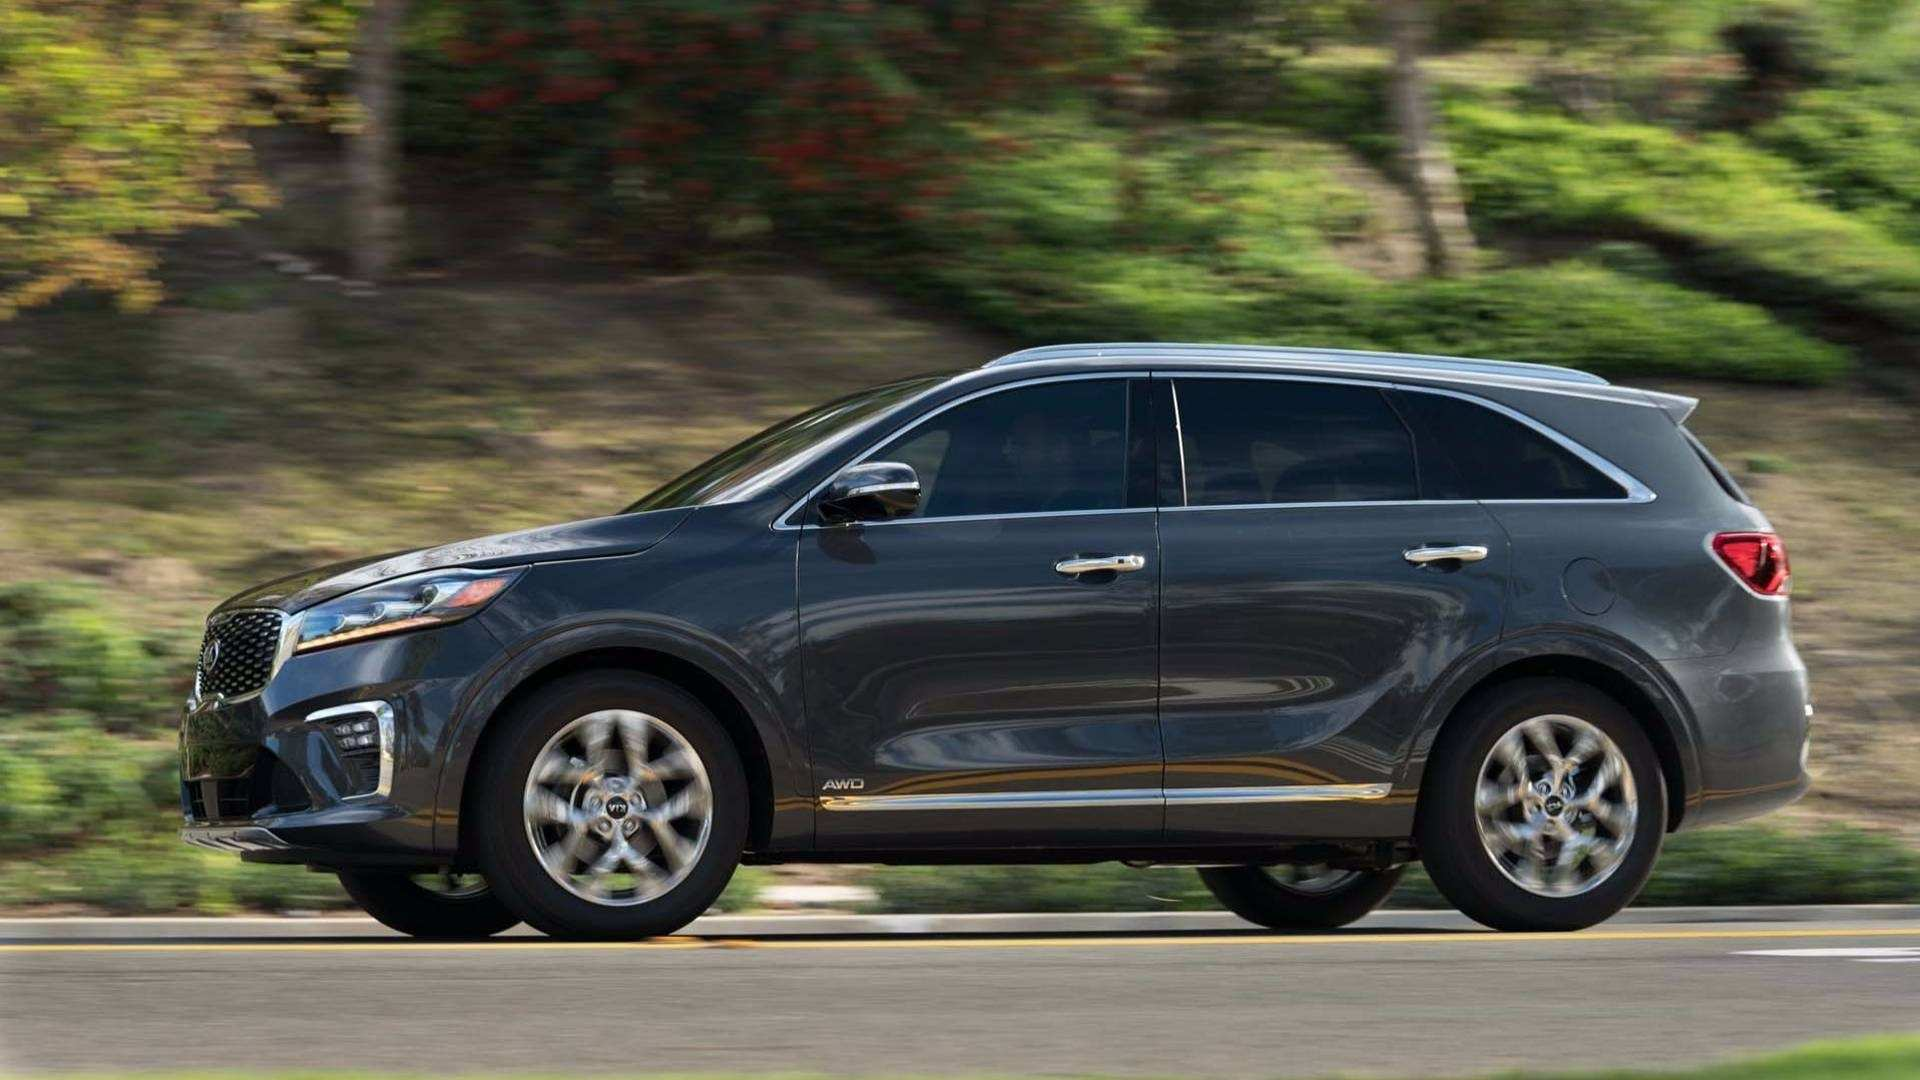 94 All New When Does 2020 Kia Sorento Come Out Redesign